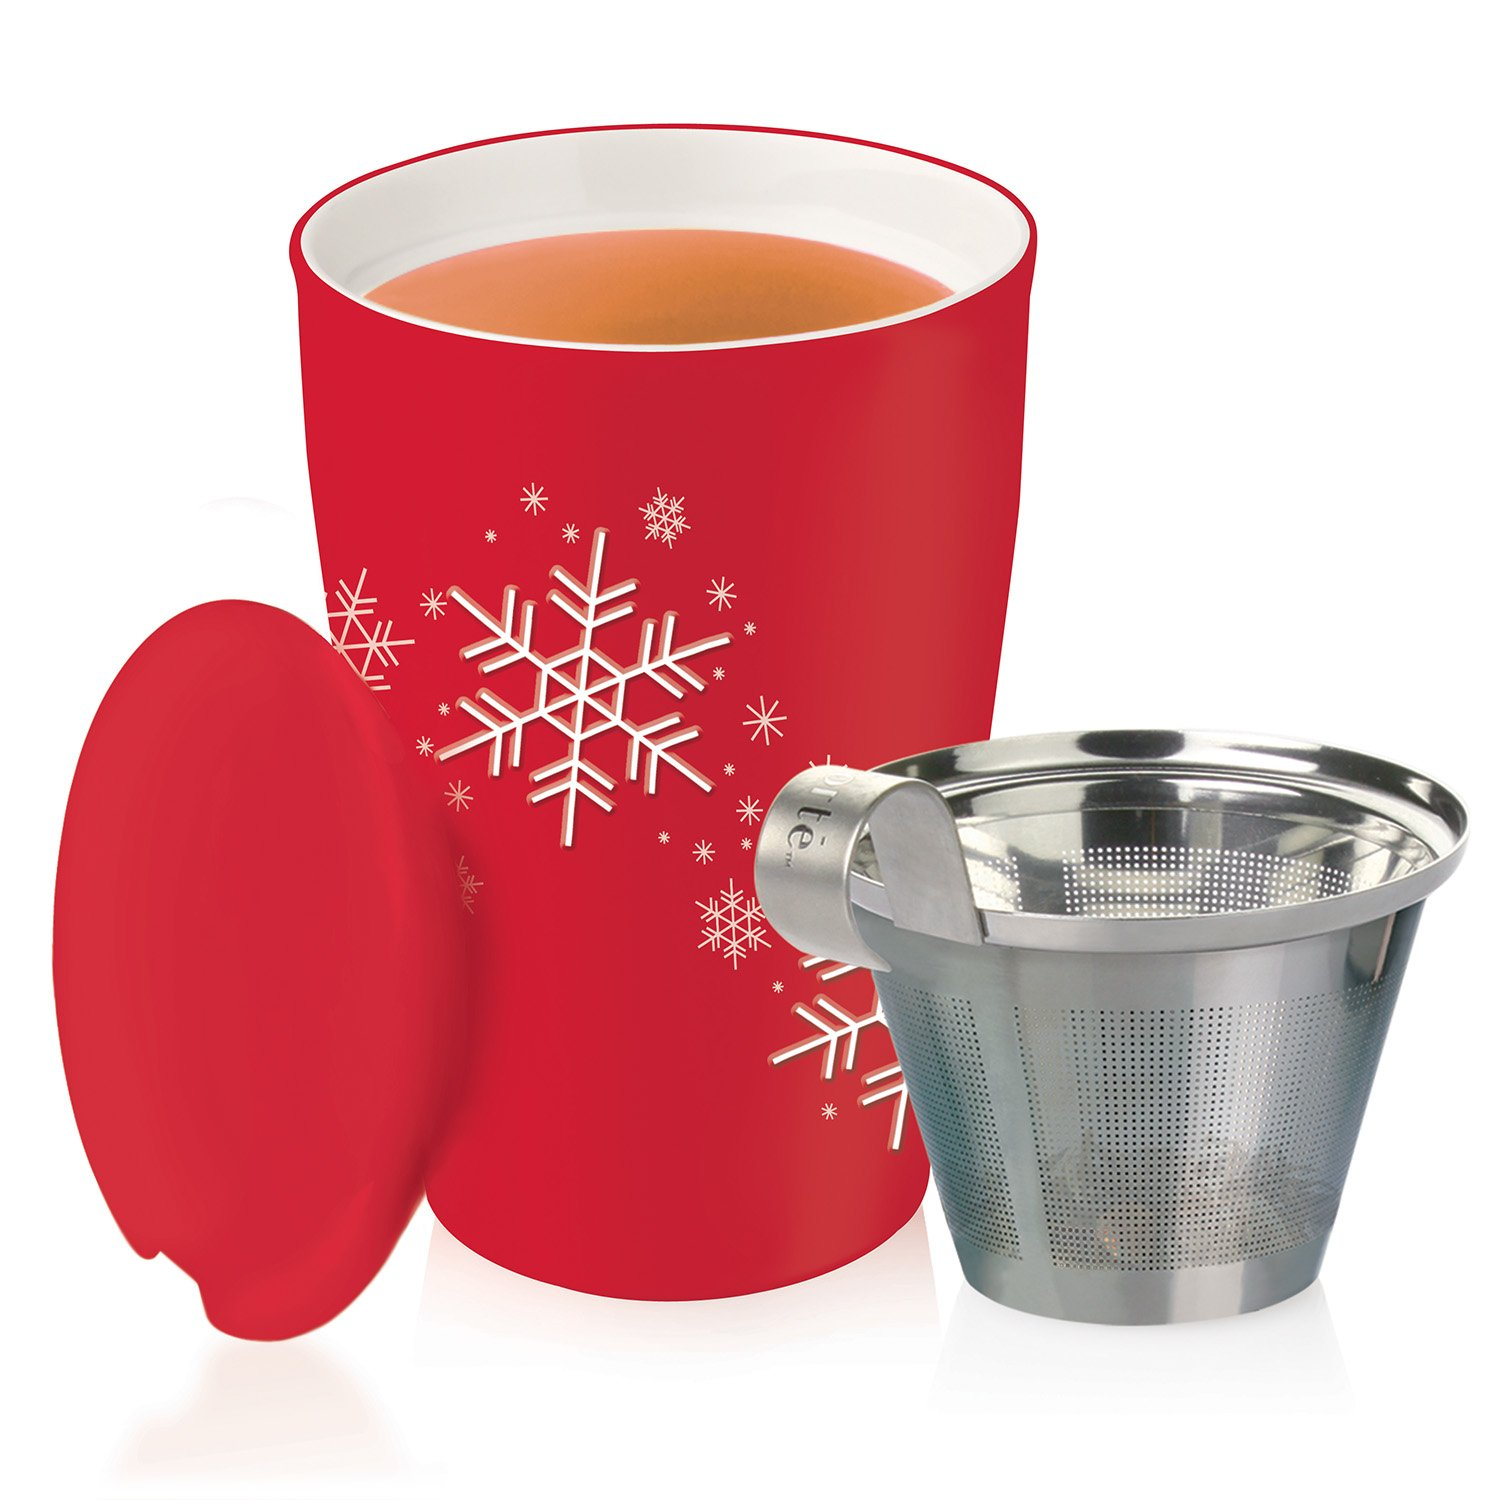 Tea Forté KATI Cup Ceramic Tea Brewing Cup with Infuser Basket and Lid for Steeping, Loose Leaf Tea Maker, Red Snowflake by Tea Forte (Image #6)